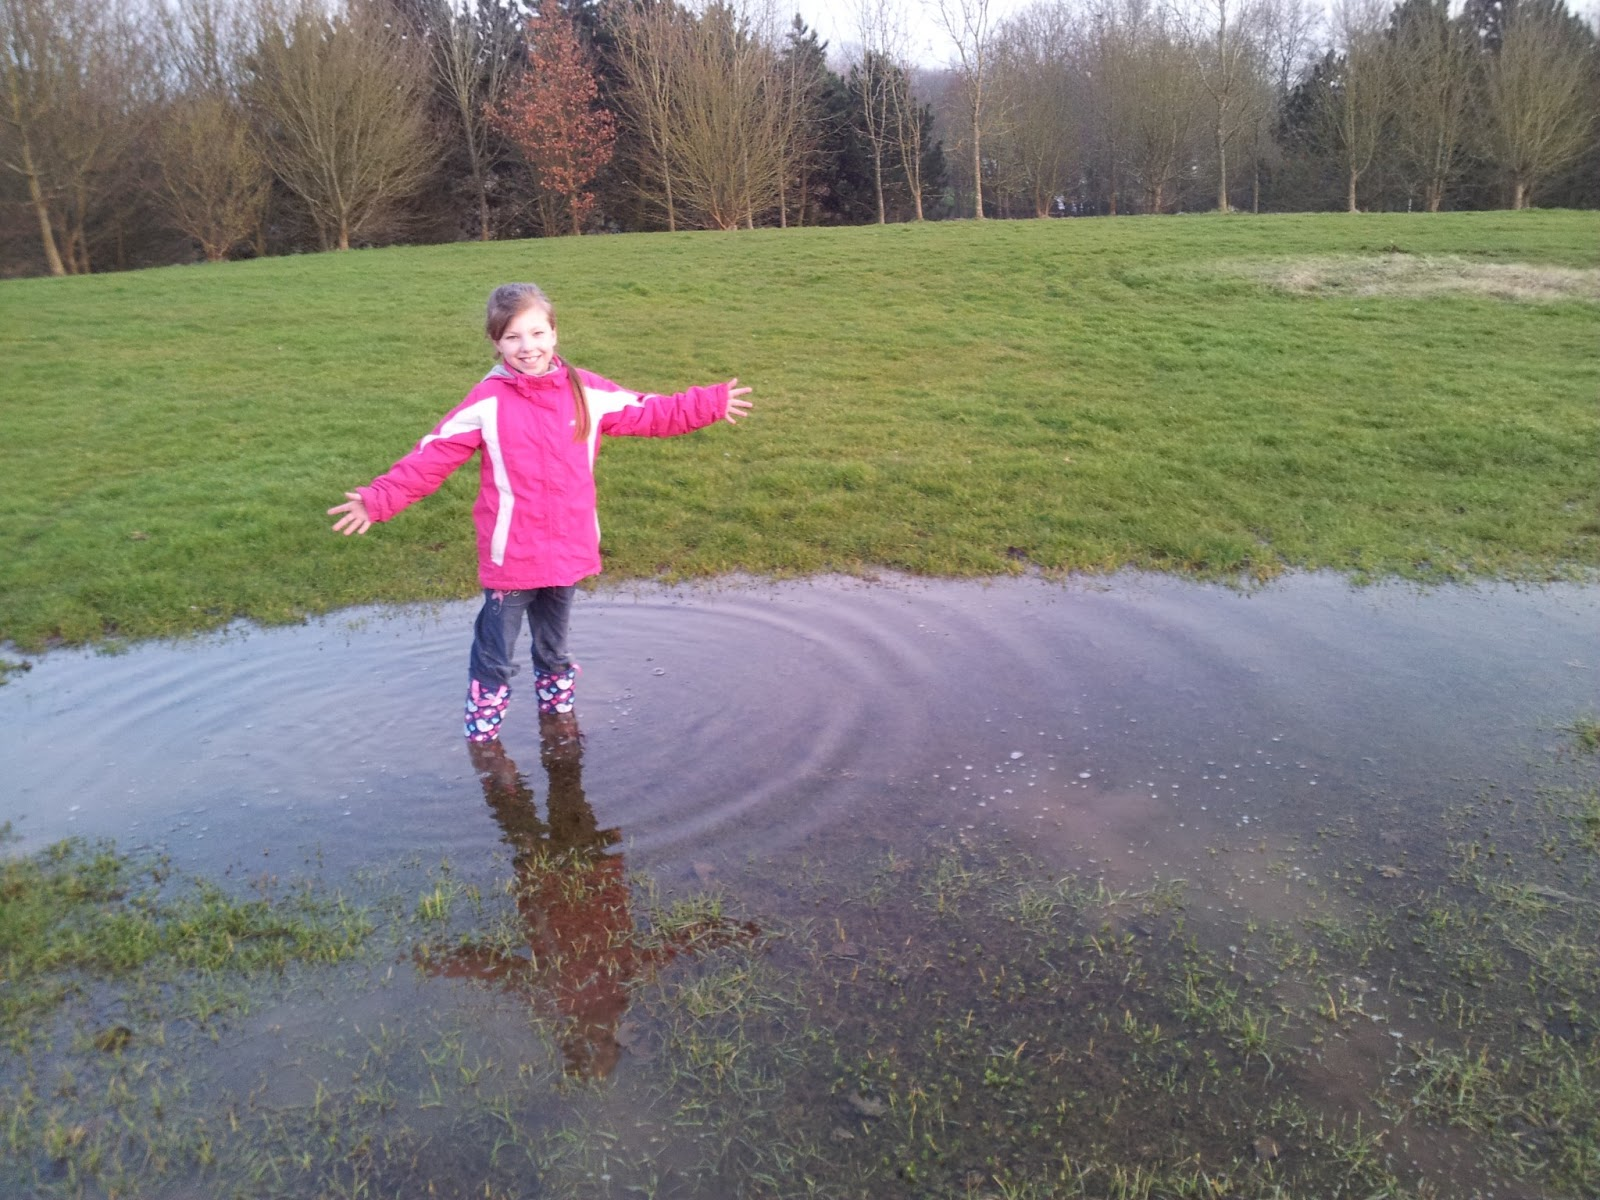 We Still Have Lot Of Snow On Ground But >> Family fun - dog walking and puddles | The Mini Mes and Me